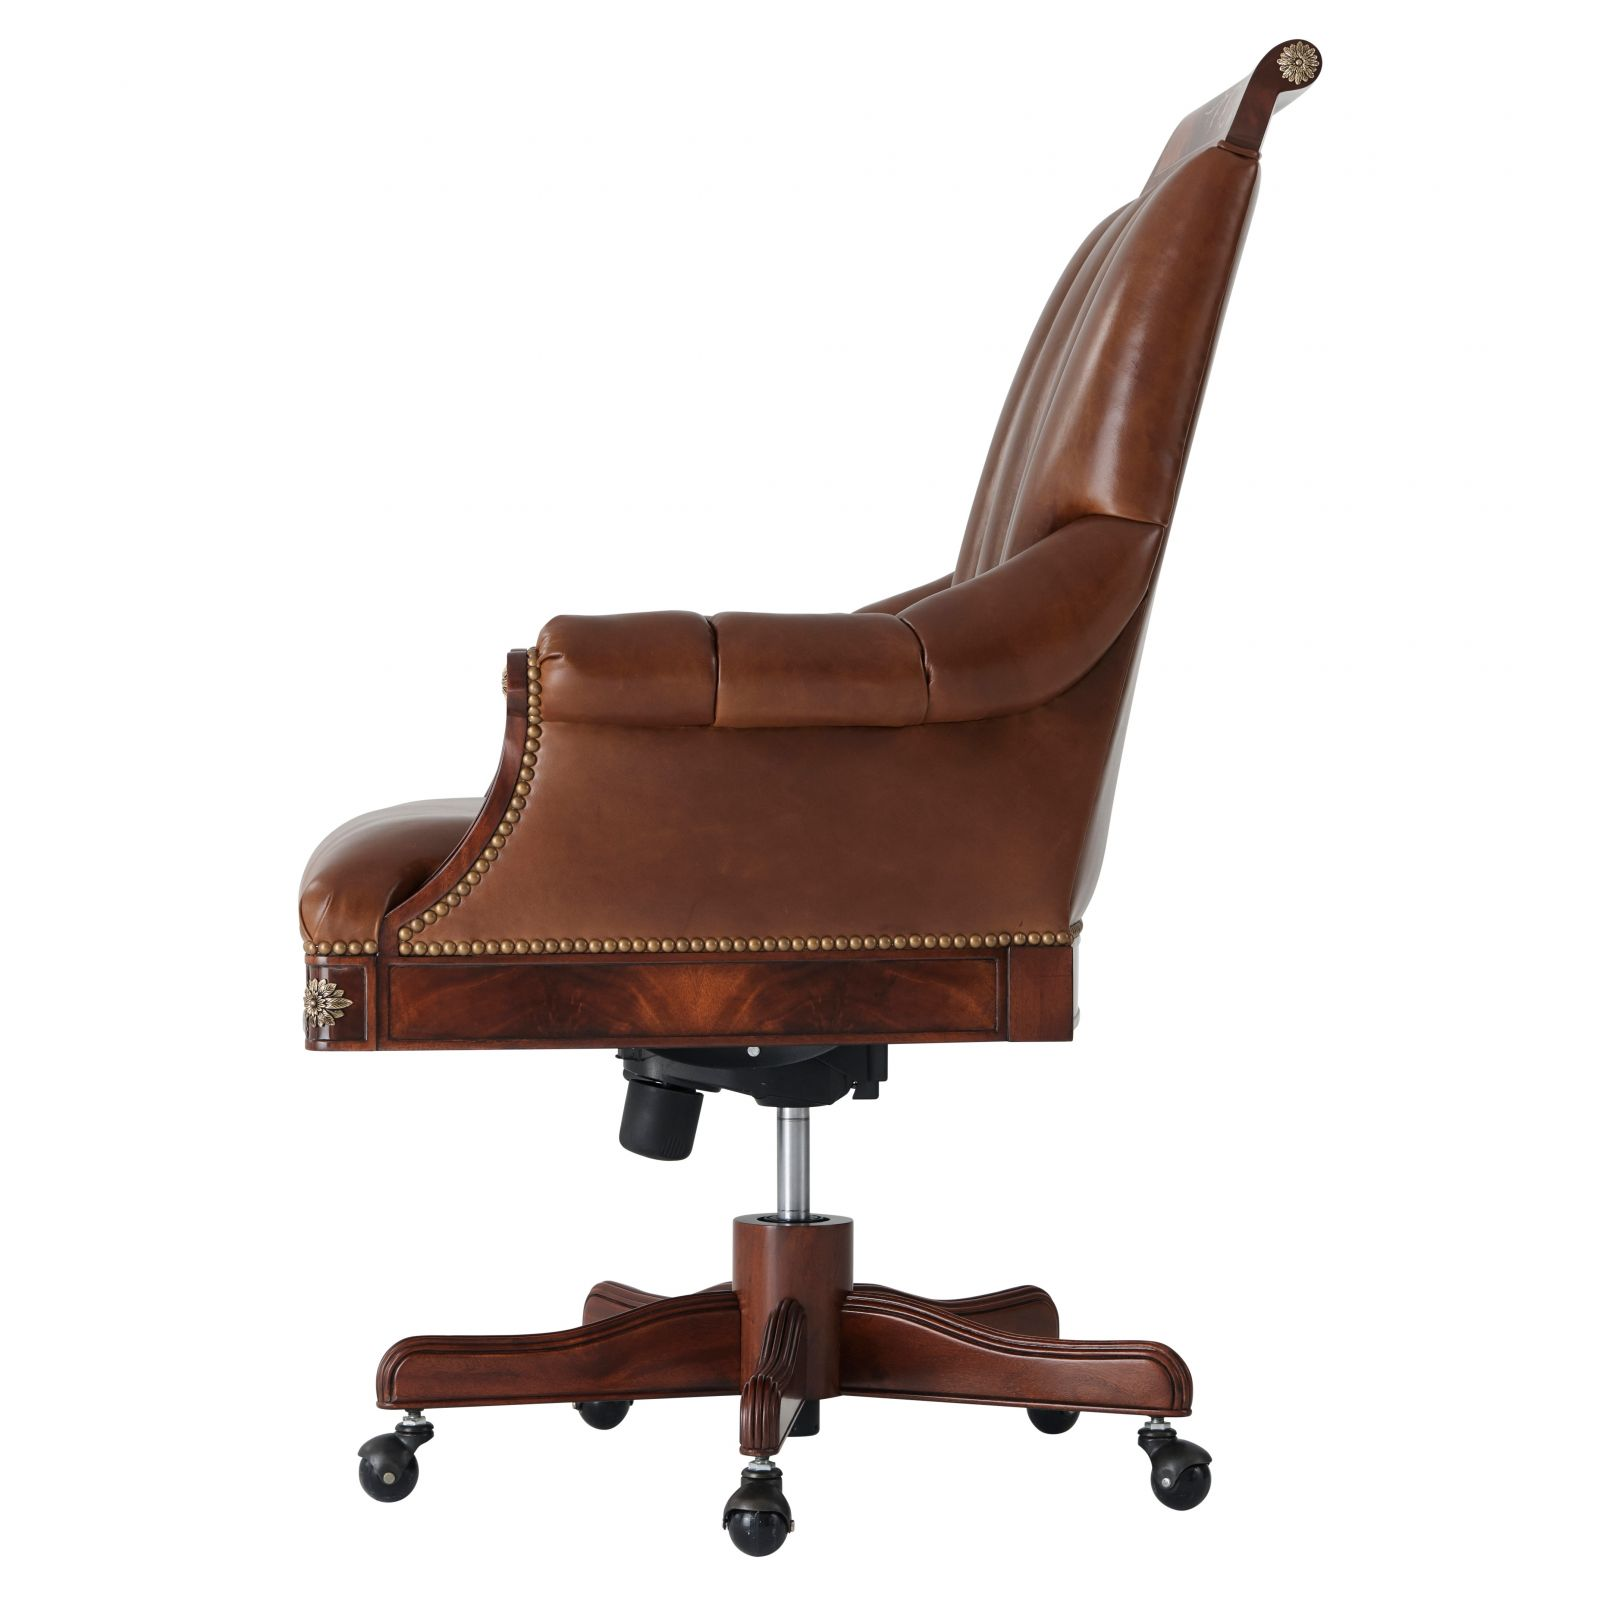 Regency style mahogany desk swivel chair with brass accents